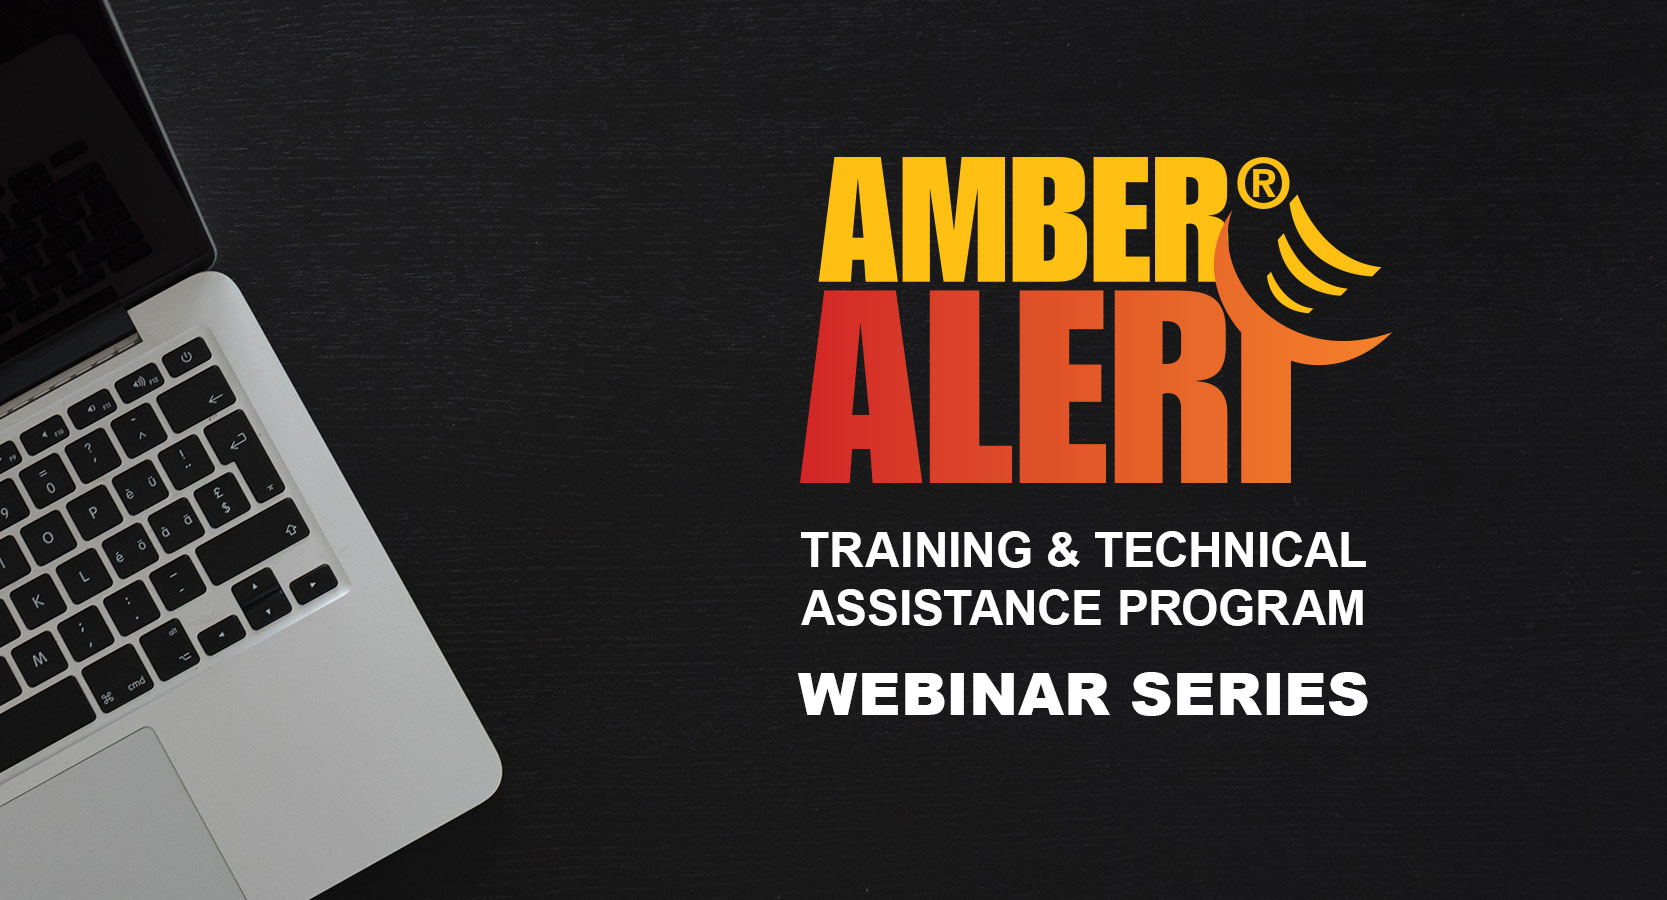 AMBER Alert Training & Technical Assistance Program Webinar Series